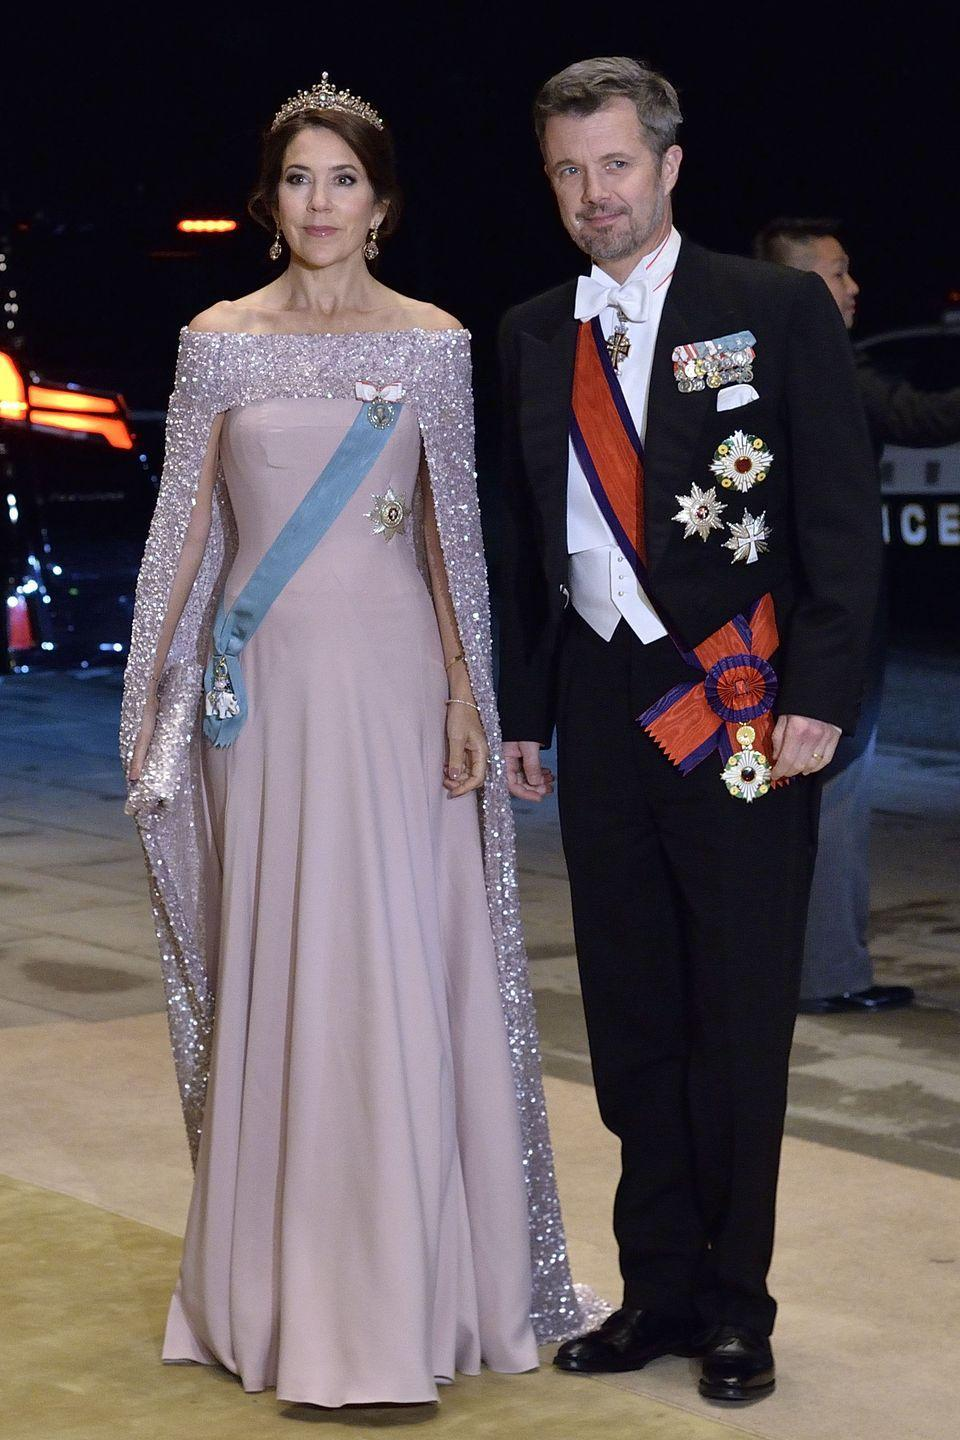 <p>That same weekend, Crown Princess Mary wore another lilac cape dress, though this one featured sequin detailing. She and Crown Prince Frederik attended a court banquet at Tokyo's Imperial Palace. This event called for even more formal attire, as Mary swapped out her hat for a tiara. <br></p>